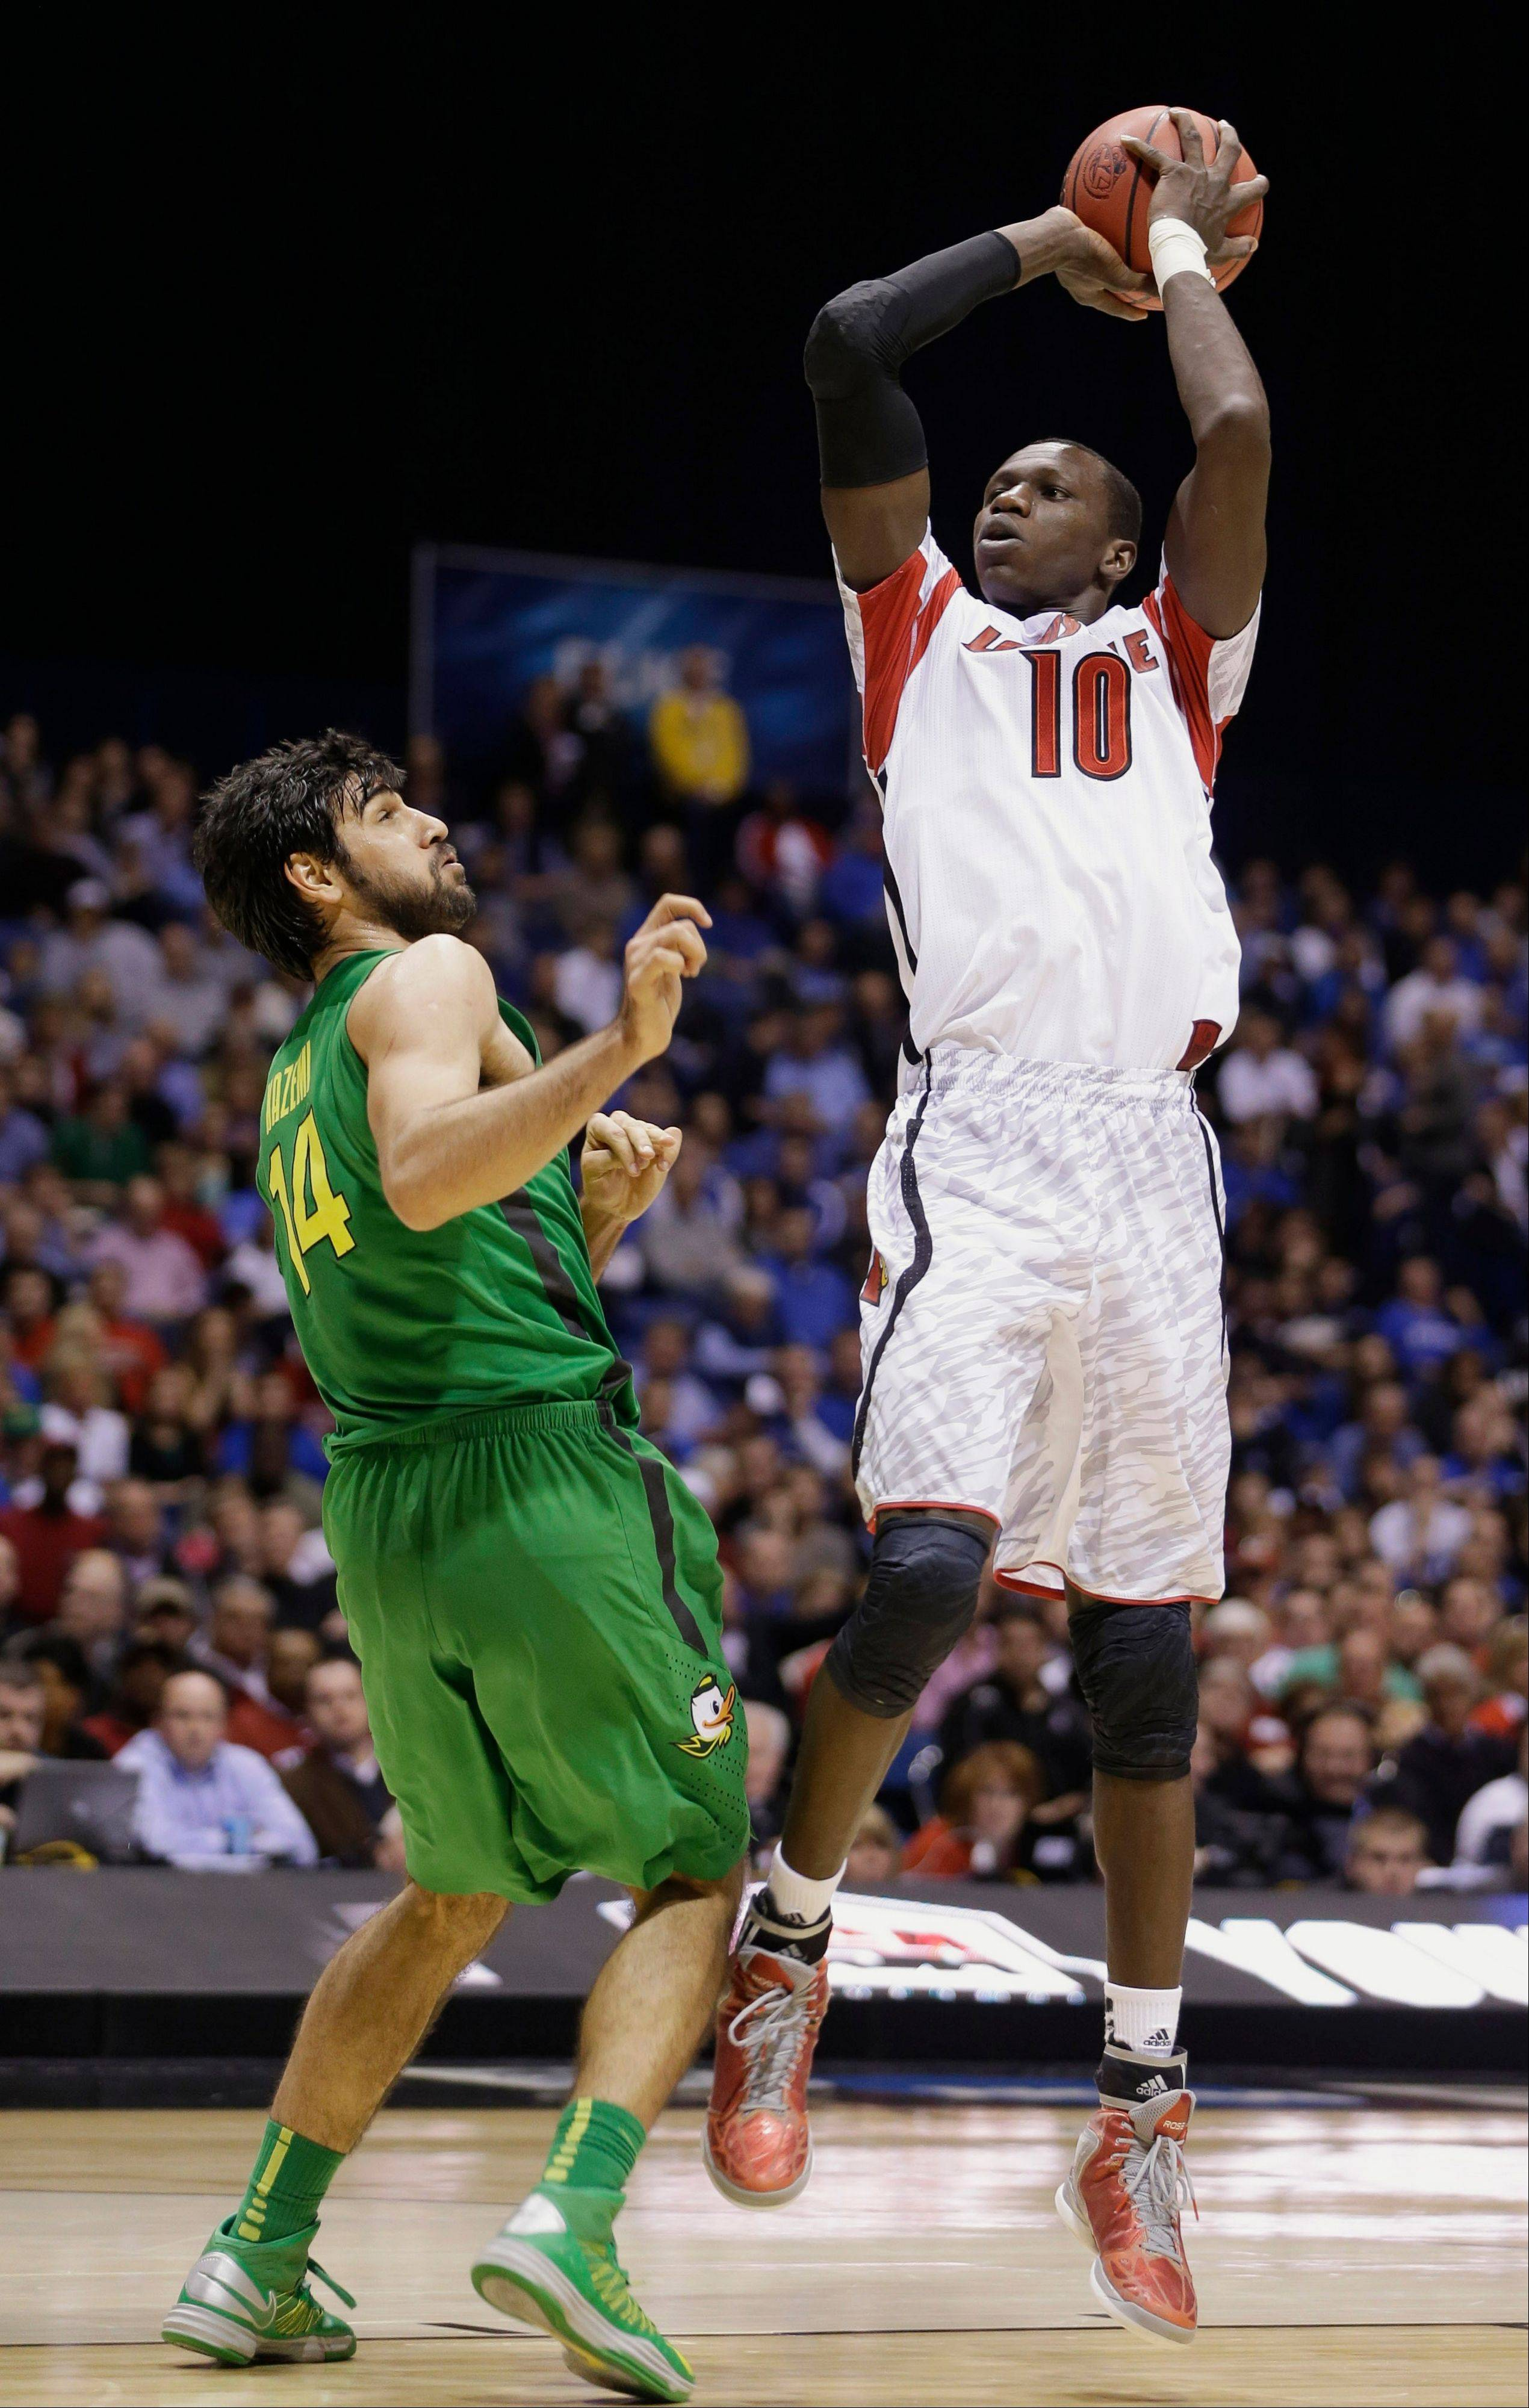 Louisville center Gorgui Dieng (10) shoots over Oregon forward Arsalan Kazemi (14) during the second half of a regional semifinal in the NCAA college basketball tournament, Friday, March 29, 2013, in Indianapolis.